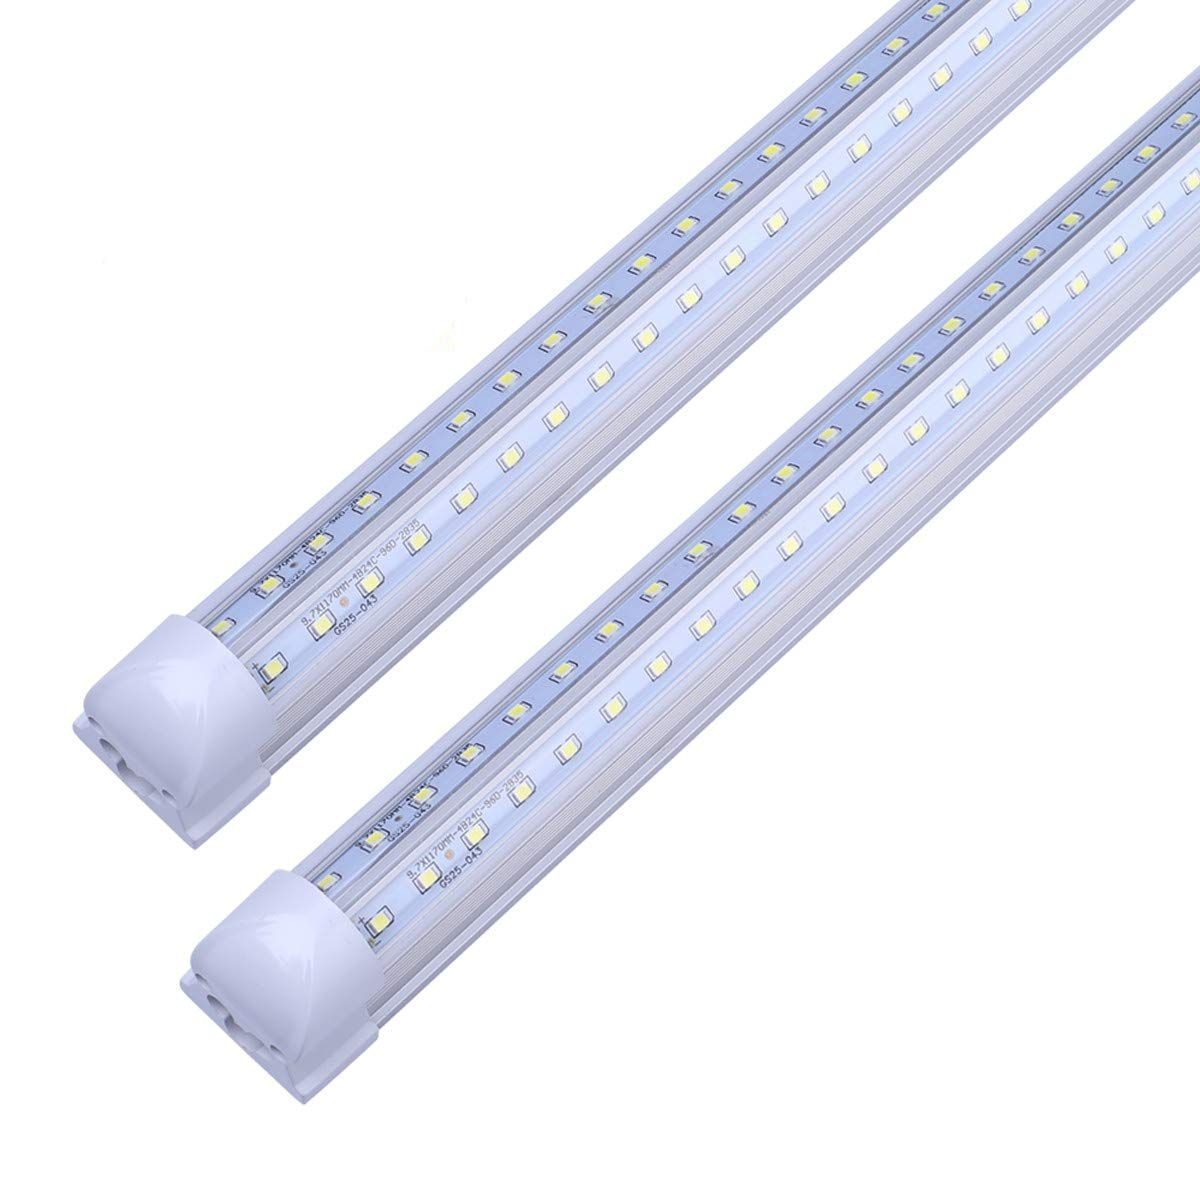 V Shape Integrated Led Tube Light 8ft 72w 150w Fluorescent Equivalent Works Without T8 Ballast Plug And Play Clear Lens Co Led Tube Light Tube Light 150w